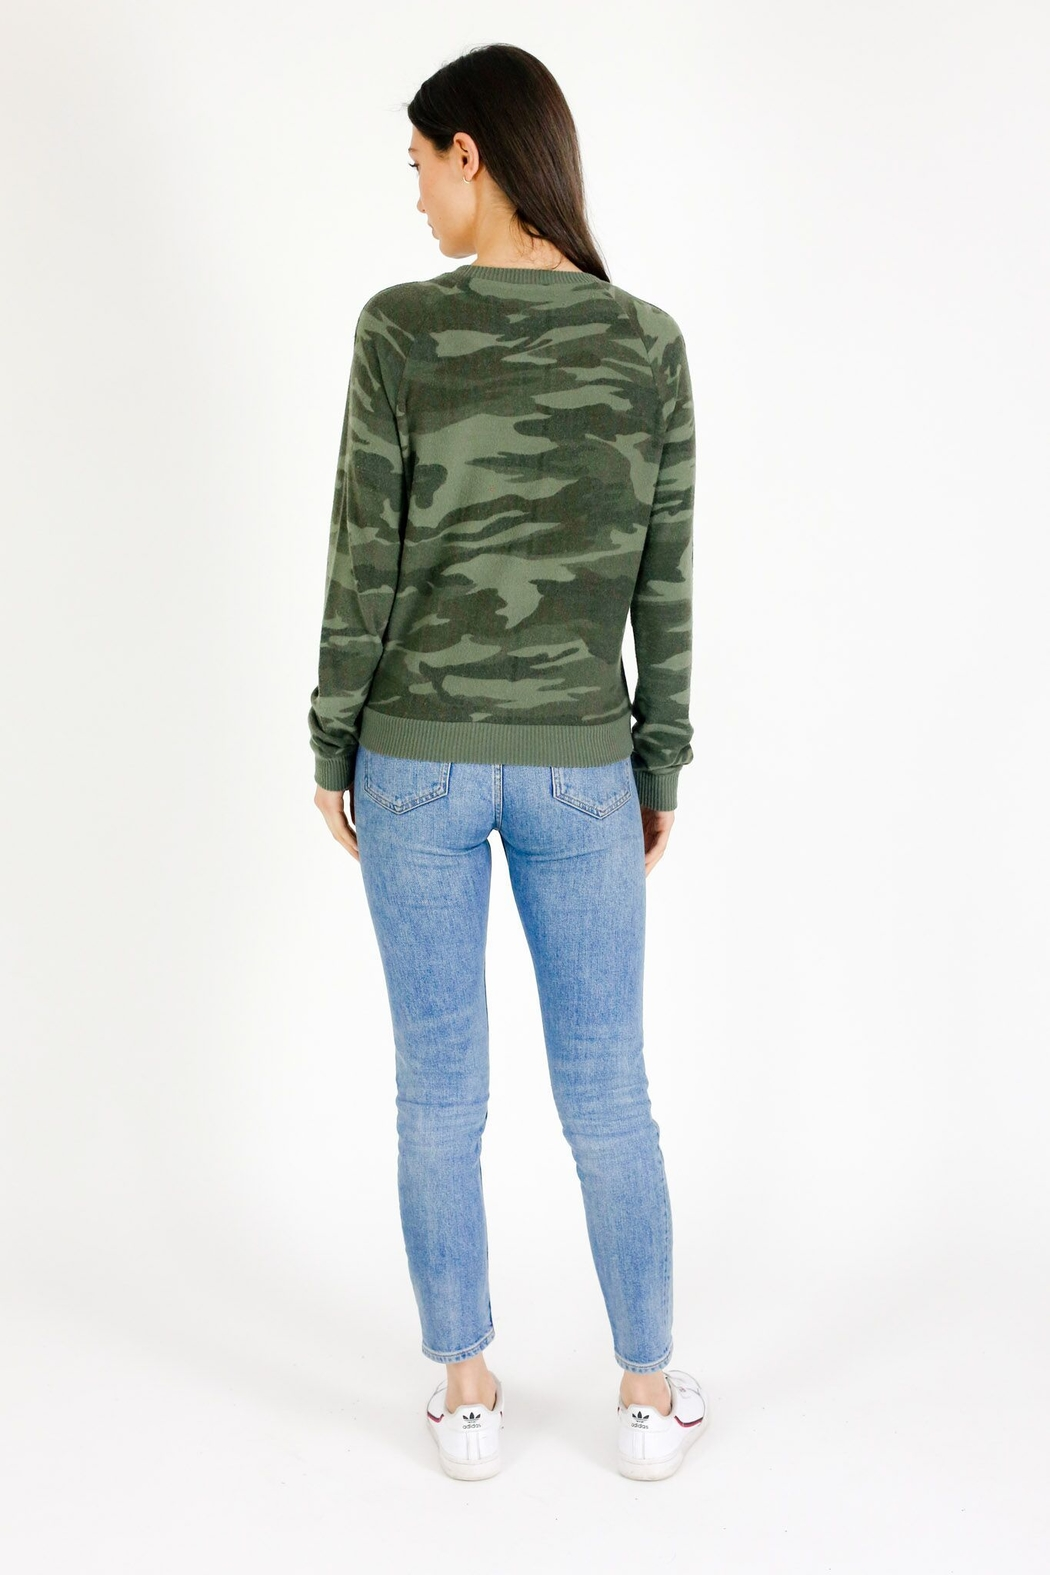 Six Fifty Camo Lace up Hacci Pullover - Main Image